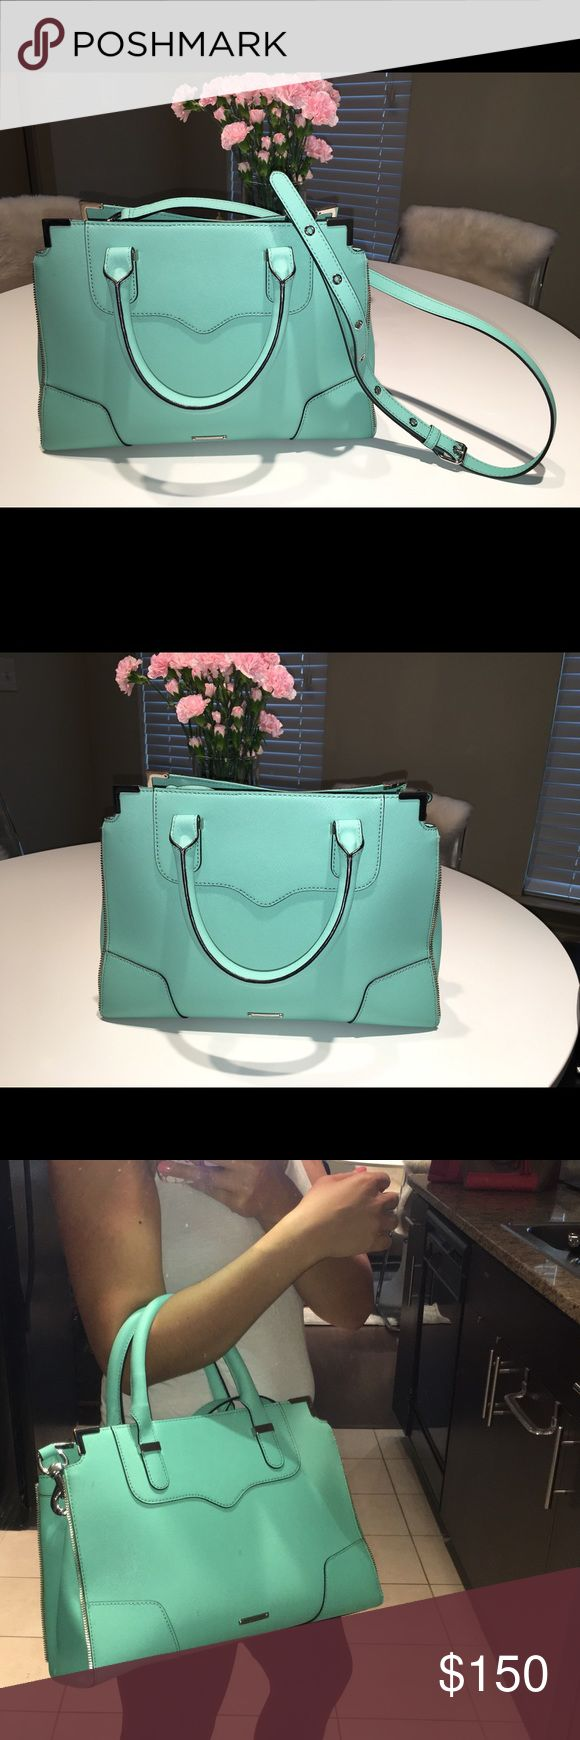 Rebecca Minkoff Amorous Purse Mint color Rebecca Minkoff purse for sale! In really good condition and barely worn. This is a great summer bag and I always get many compliments on it when I wear it. I'm selling because I have other bags that I find myself wearing a lot more. This has a long adjustable strap to wear many ways! Rebecca Minkoff Bags Totes